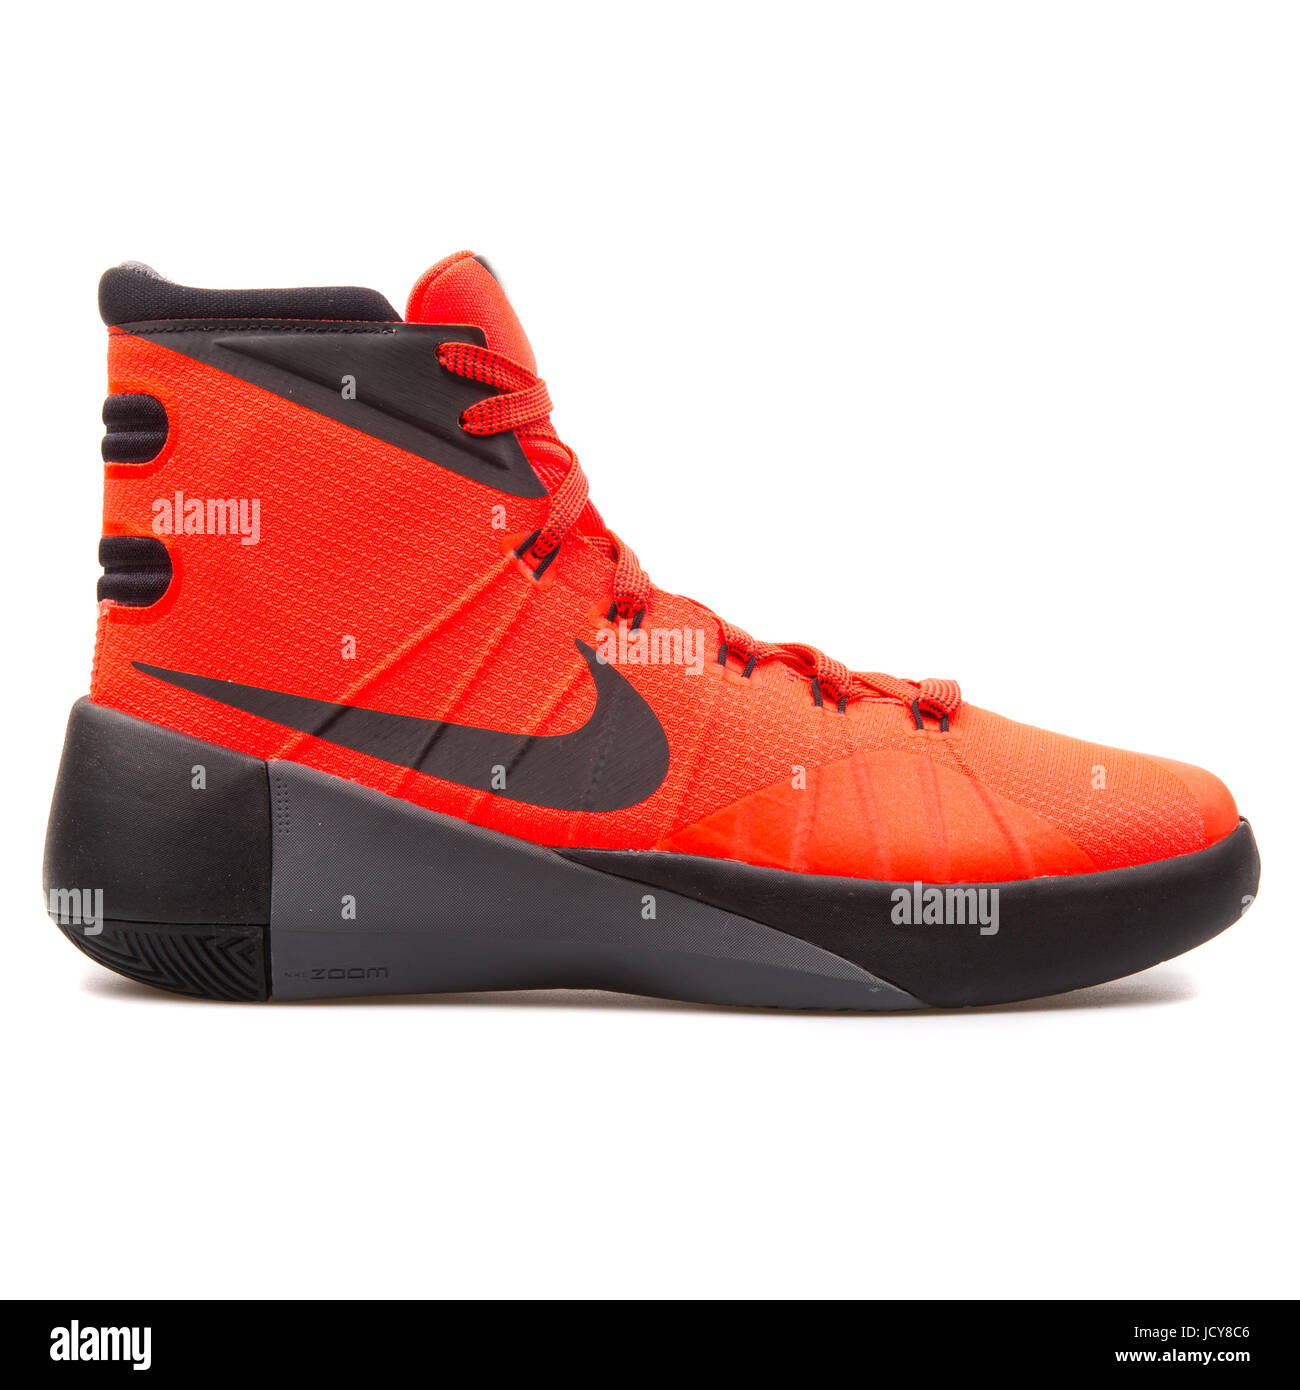 newest 11eff 2593d ... authentic nike hyperdunk 2015 gs bright crimson black and grey youths basketball  shoes 759974 600 48382